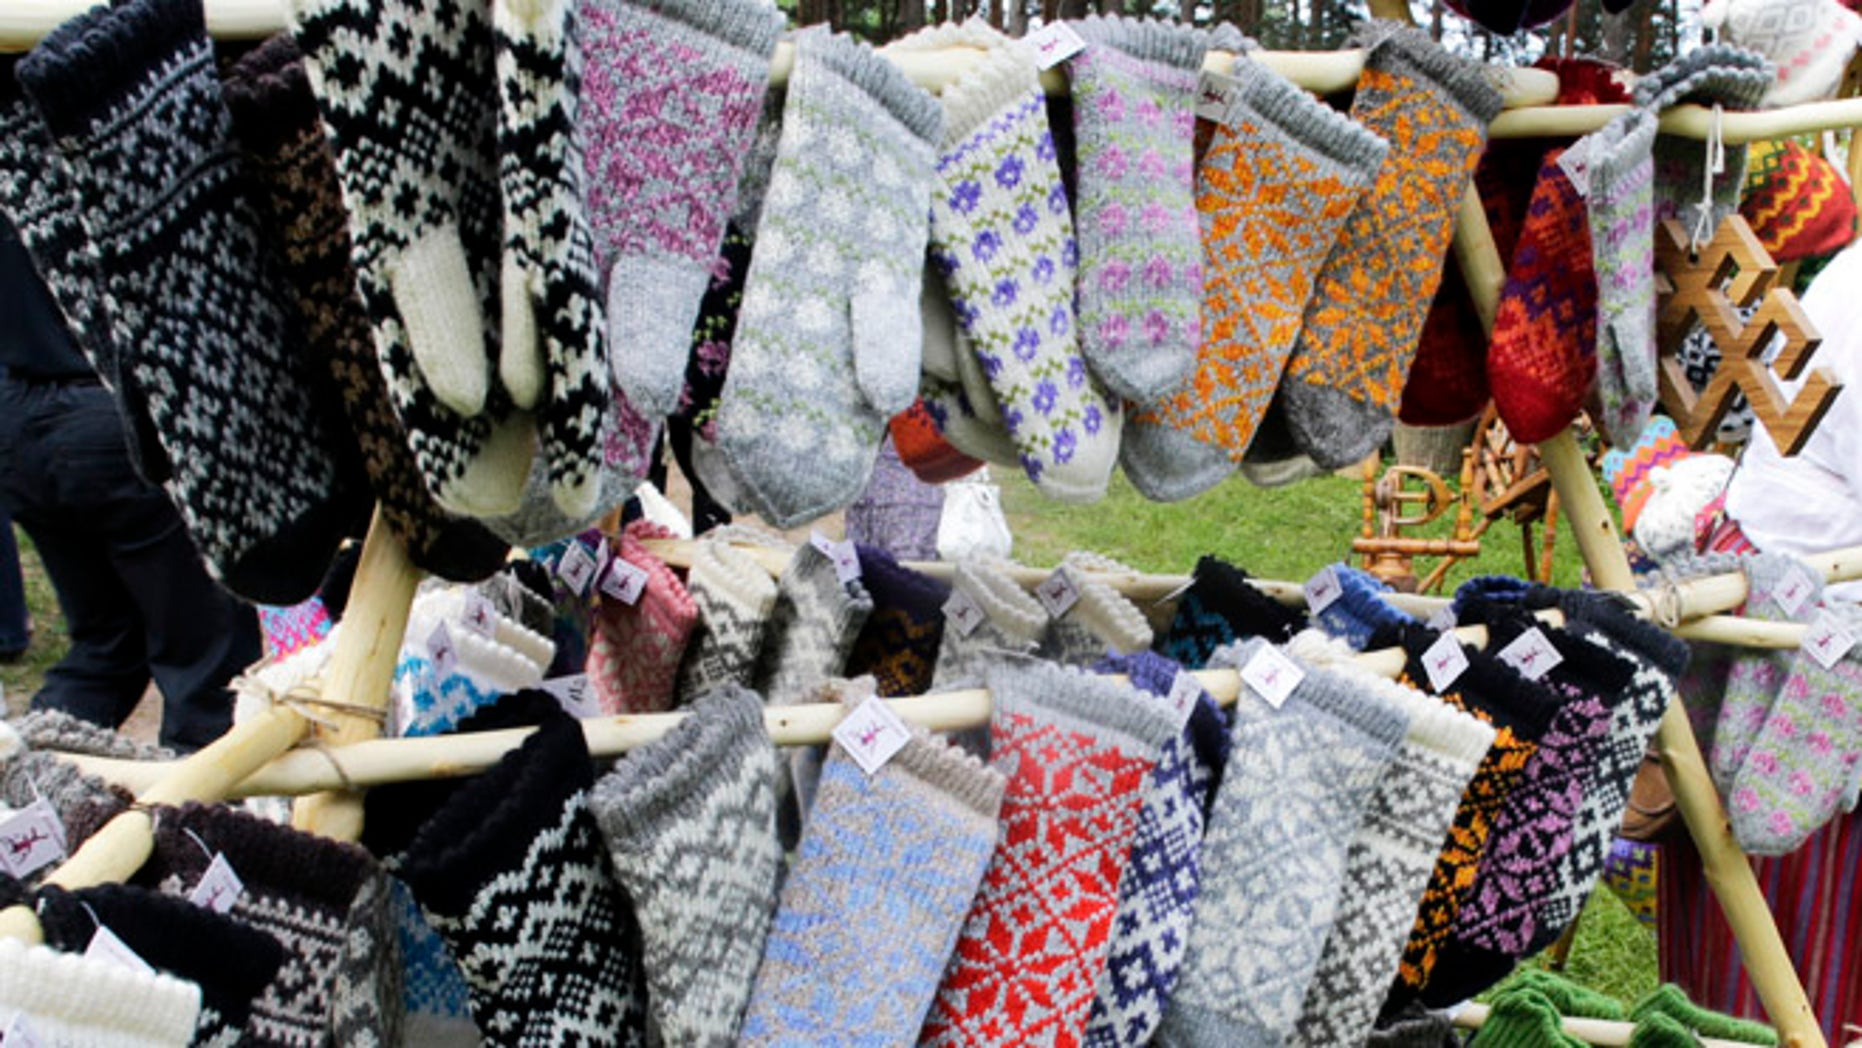 Traditional knitted mittens are displayed during an annual Traditional Applied Arts Fair in the Ethnographic Open-air Museum of Latvia in Riga, June 1, 2013. According to the organisers, the fair has more than 500 tailors, leather craftsmen, wood carvers, jewellery designers, blacksmiths, basket-makers, weavers, potters, as well as knitters from all over Latvia who will be selling their crafts from June 1 to 2. REUTERS/Ints Kalnins (LATVIA - Tags: SOCIETY TRAVEL) - RTX10864